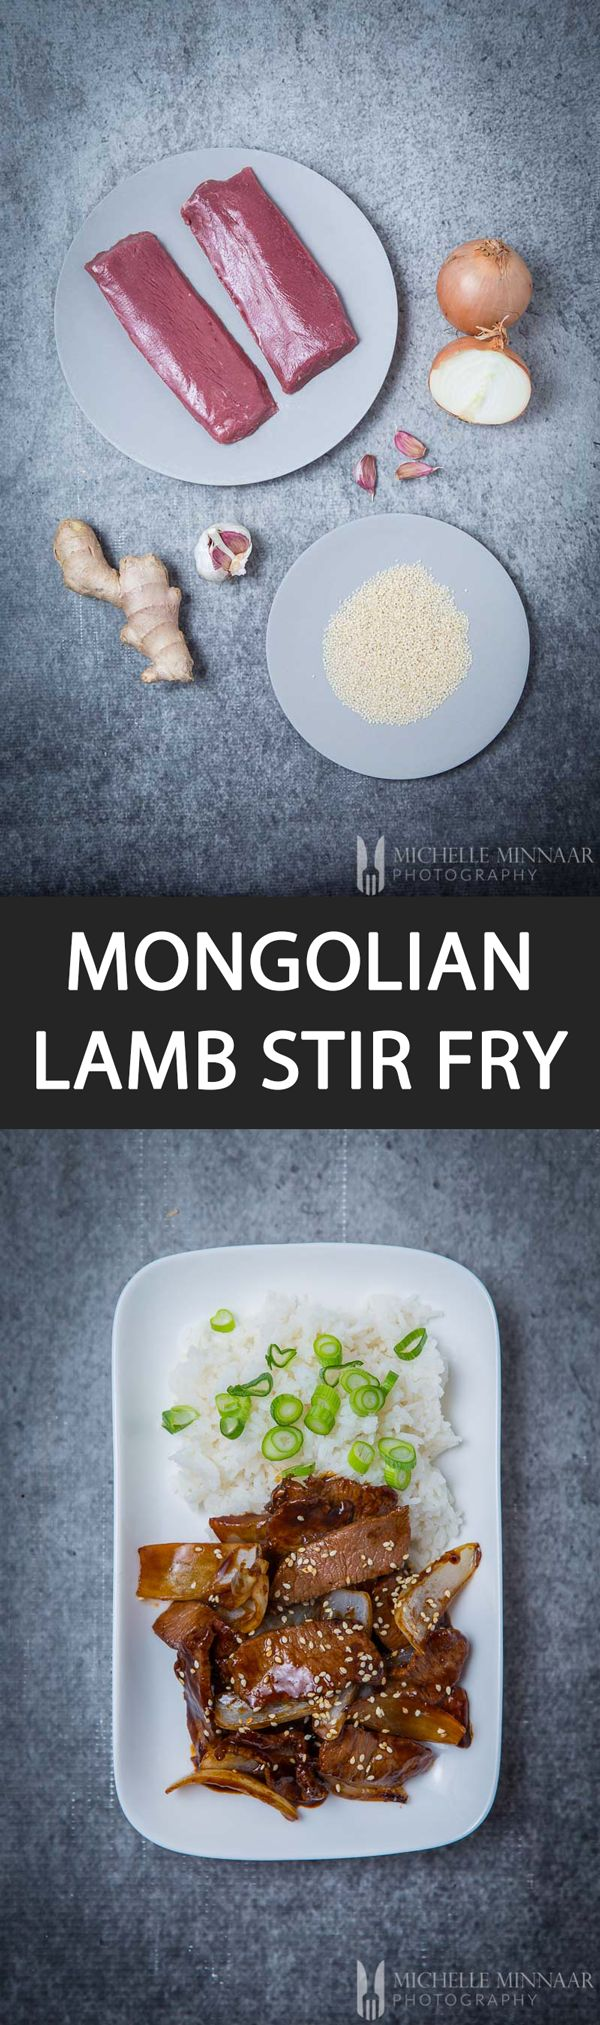 Mongolian Lamb Stir Fry - {NEW RECIPE} Mongolian #Lamb Stir fry is a superb #recipe to cook as a mid-week #dinner. Buy top quality lamb fillets, chop up some big #onions and you're good to go. The lamb benefits from being #marinated before cooking for extra flavour. Cooking is a quick process and what you end up with is tender lamb, crispy onion and yummy #sauce!